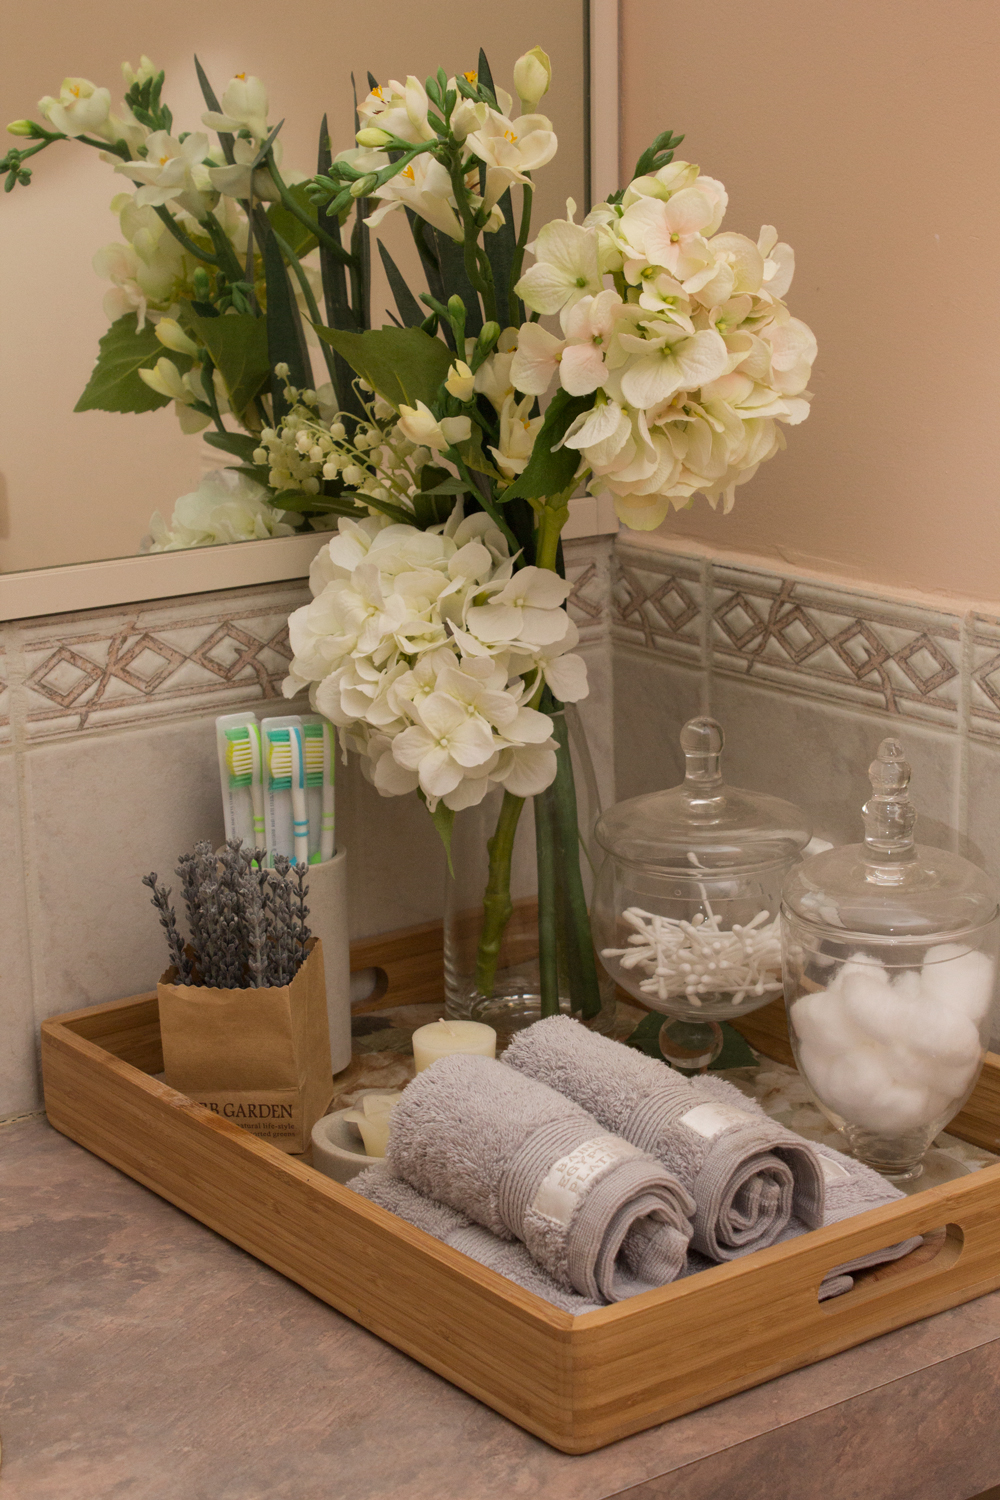 Bathroom Countertop Storage Solutions With Aesthetic Charm on Counter Top Decor  id=98173